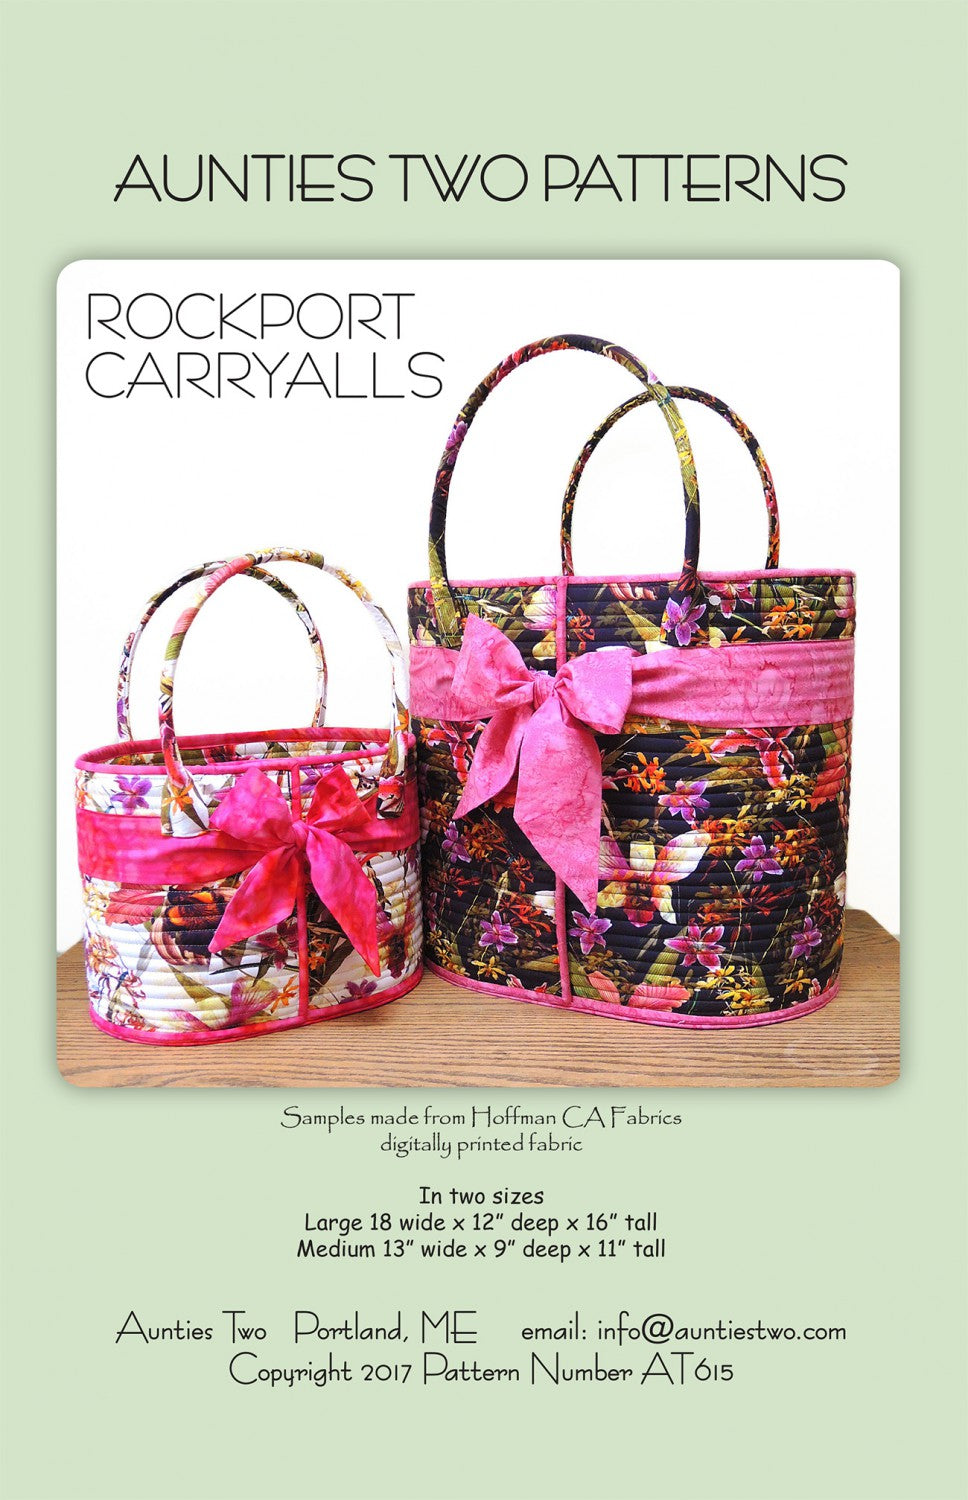 Rockport Carryall - Auntie Two Pattern